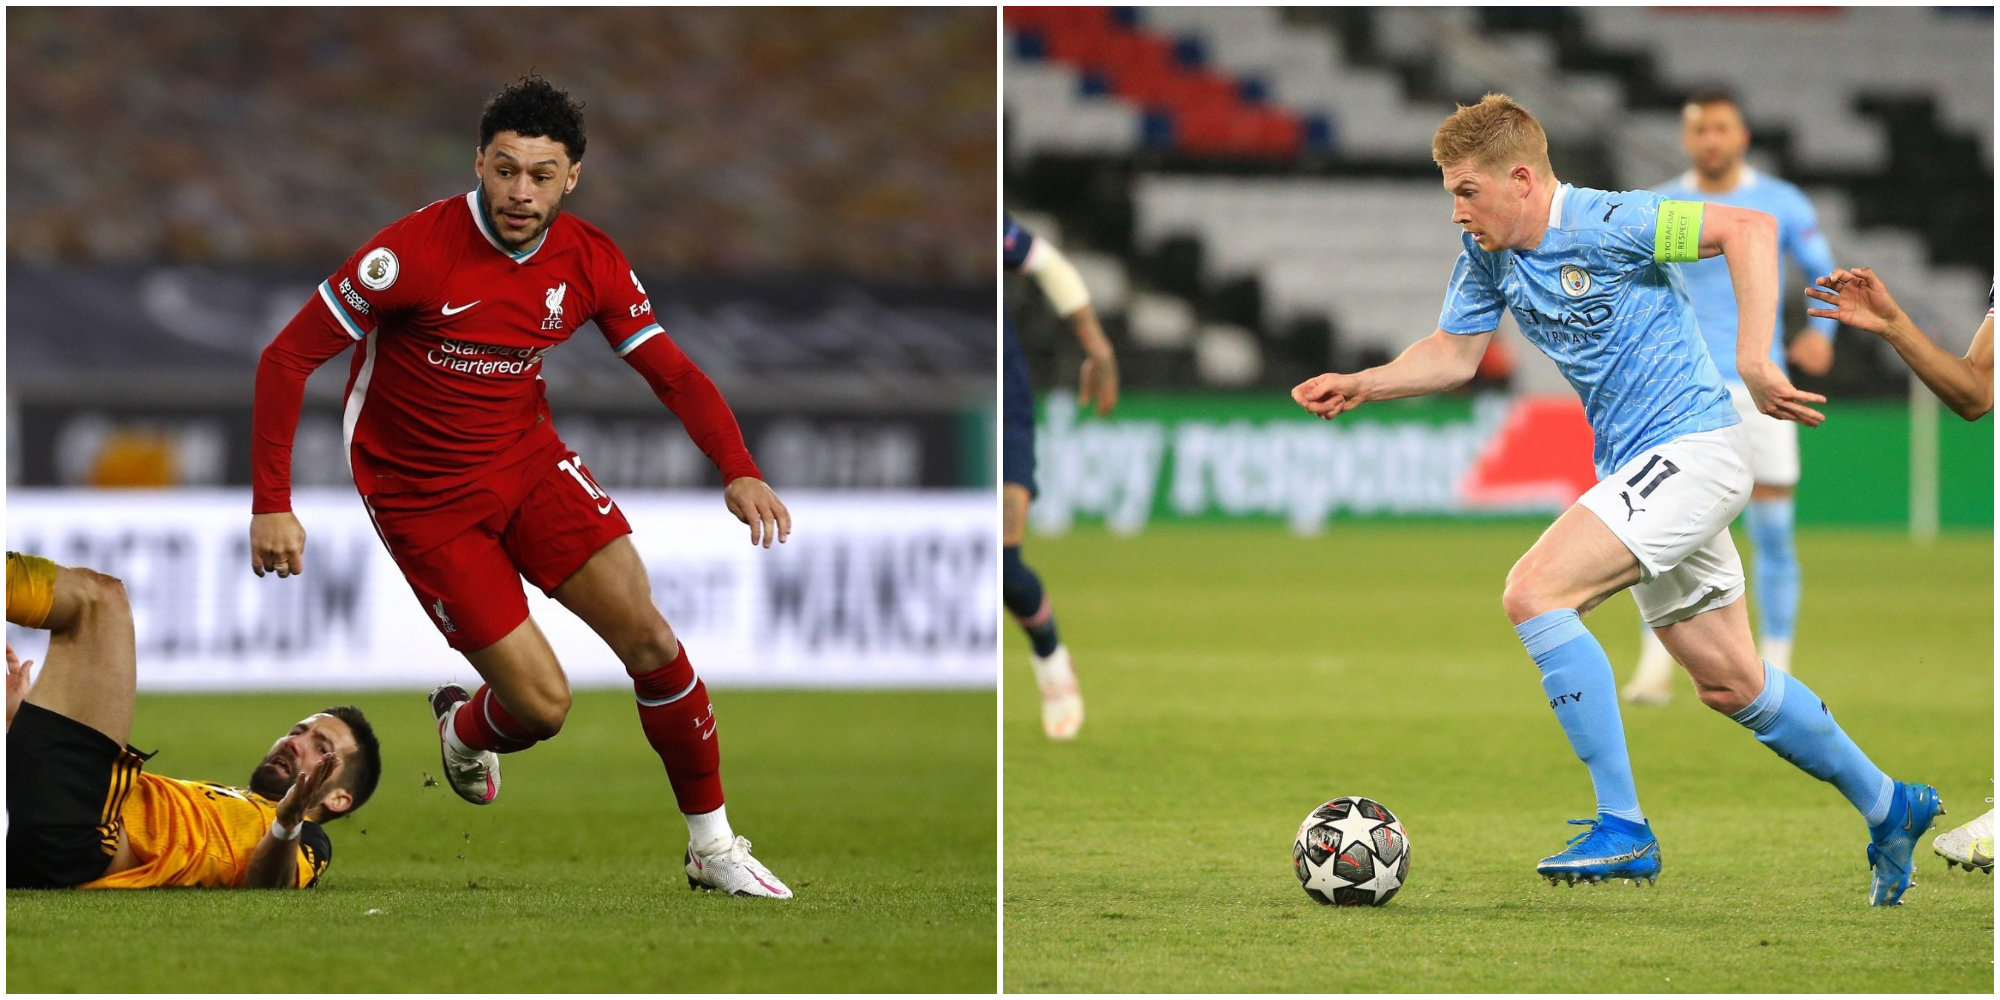 Liverpool midfielder names world-class Manchester City star he looks up to: 'He's got great numbers'